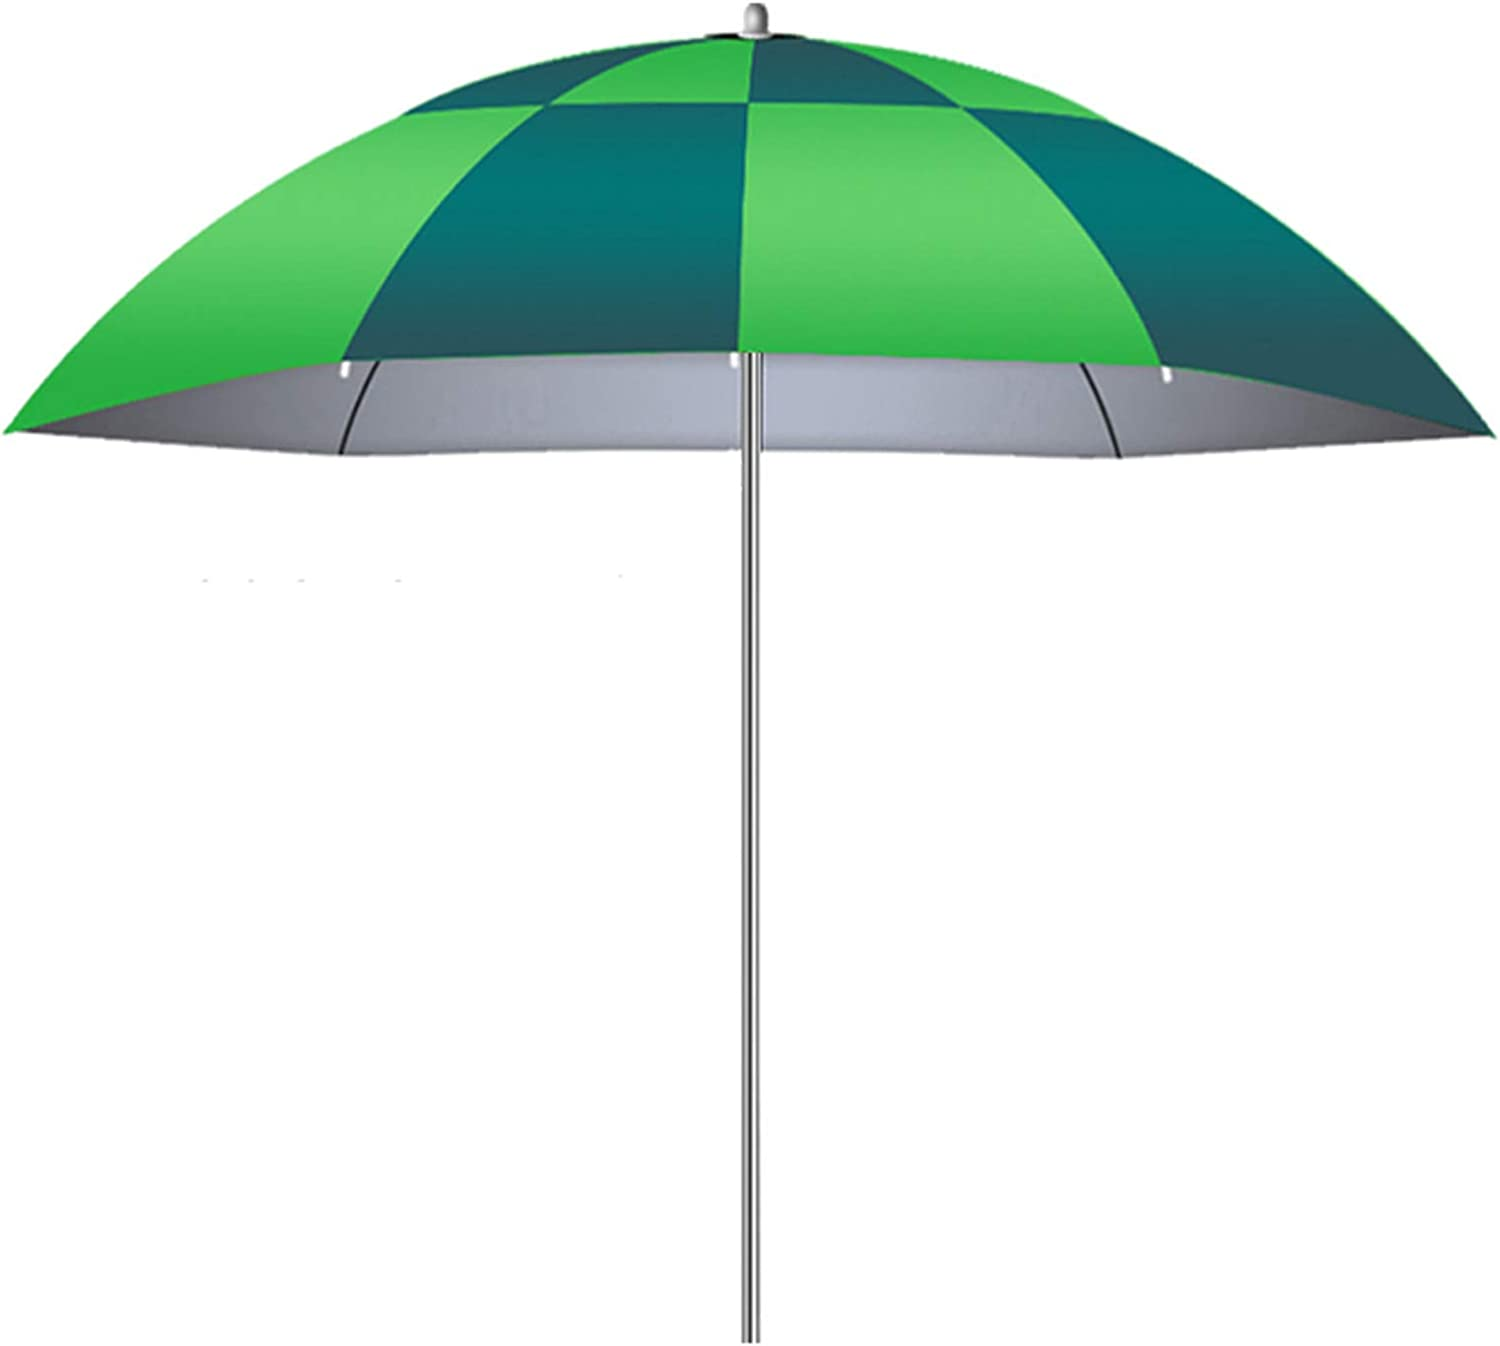 Fishing Umbrella Thickened Large Max 85% OFF Angling Outdoor Double-Layer Raleigh Mall Pa